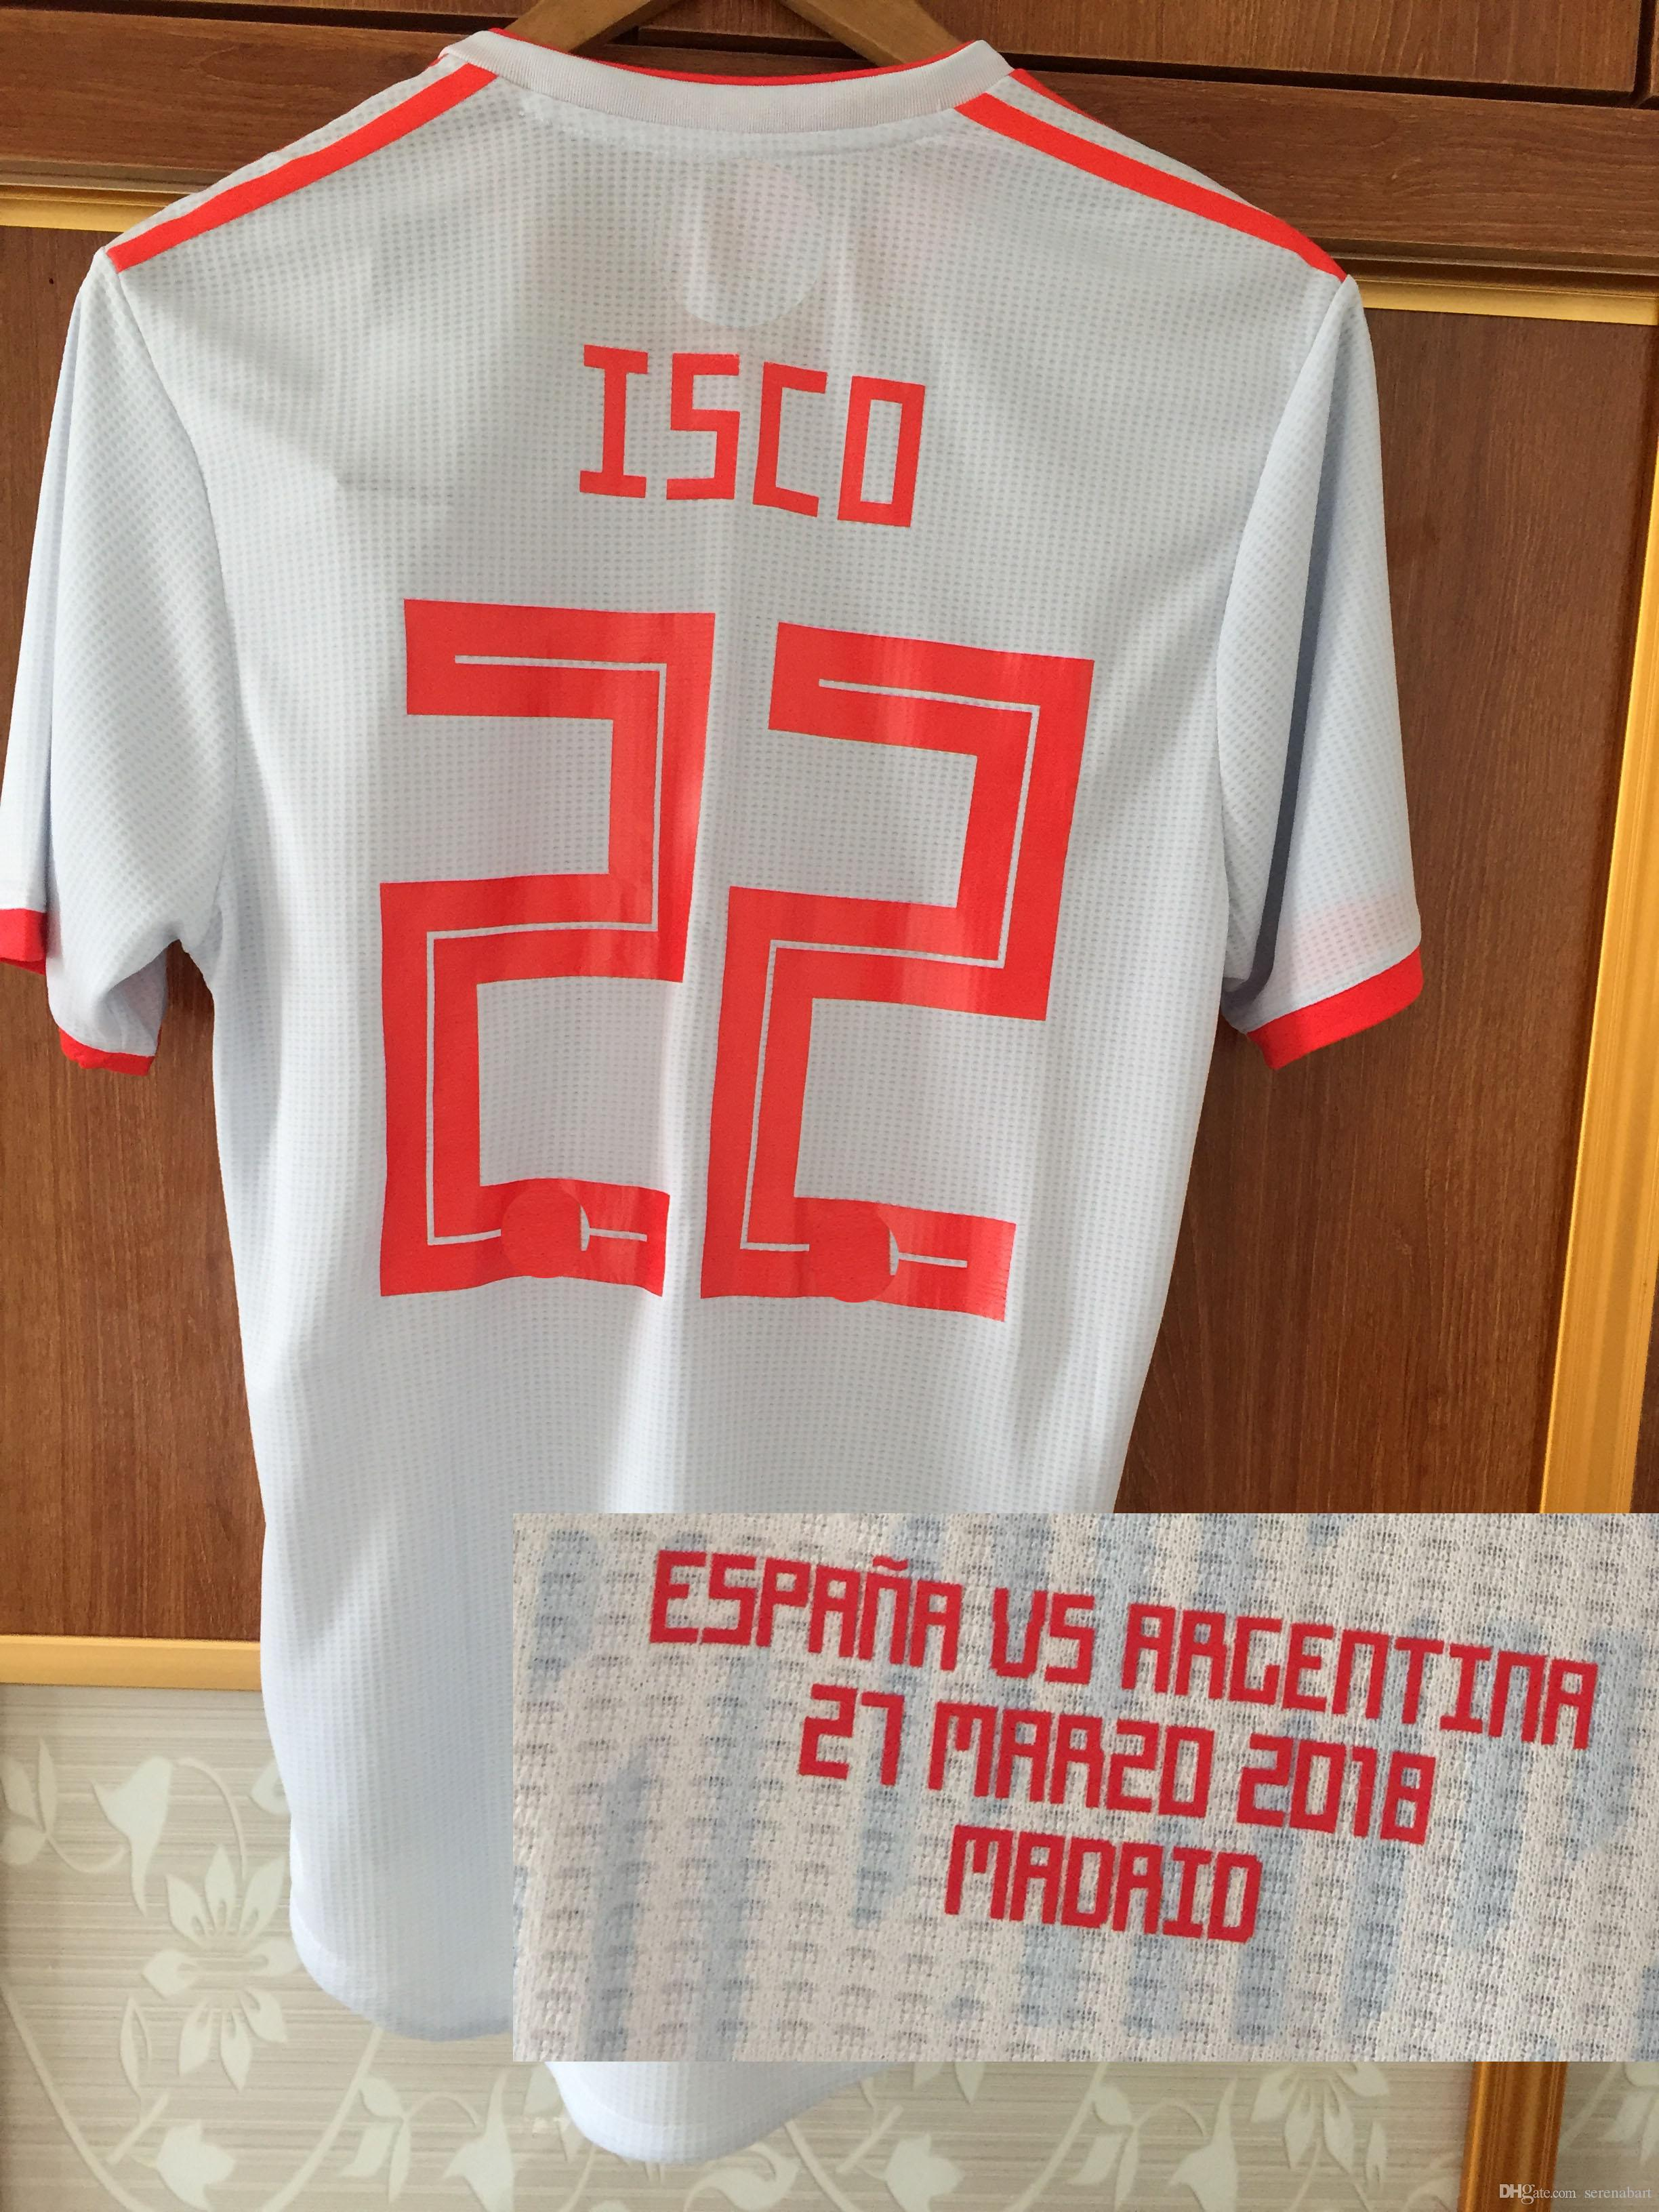 b3cd181221c0 2019 2018 Spain Match Worn Player Issue Jersey Isco A.Iniesta With Match  Details Spain Vs Argentina Customize Any Name Any Number Soccer Shirt From  ...